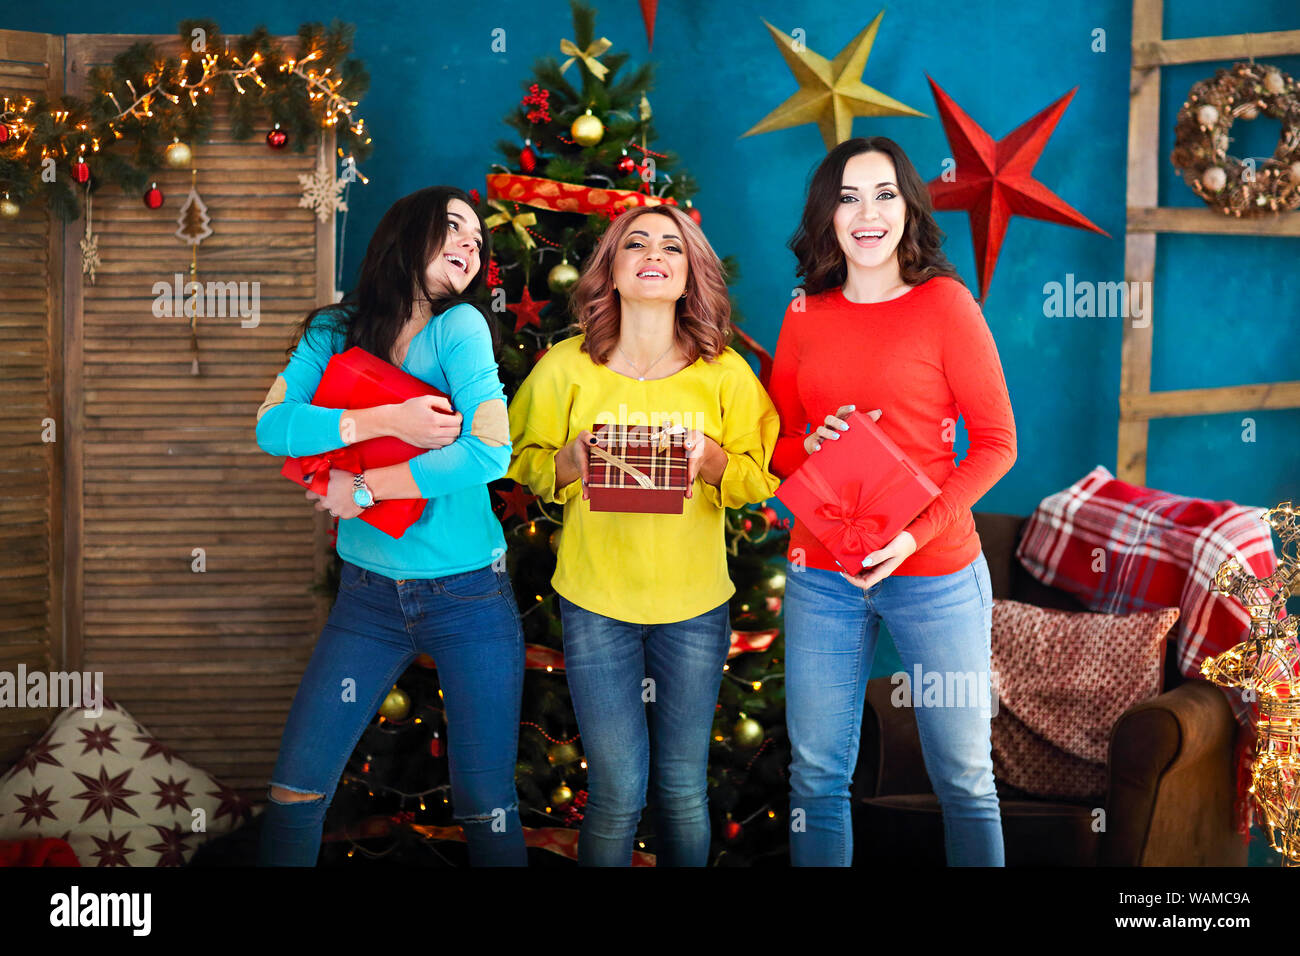 Smiling happy woman with gift box over living room on Christmas tree background. Holidays and people concept. Xmas time Stock Photo